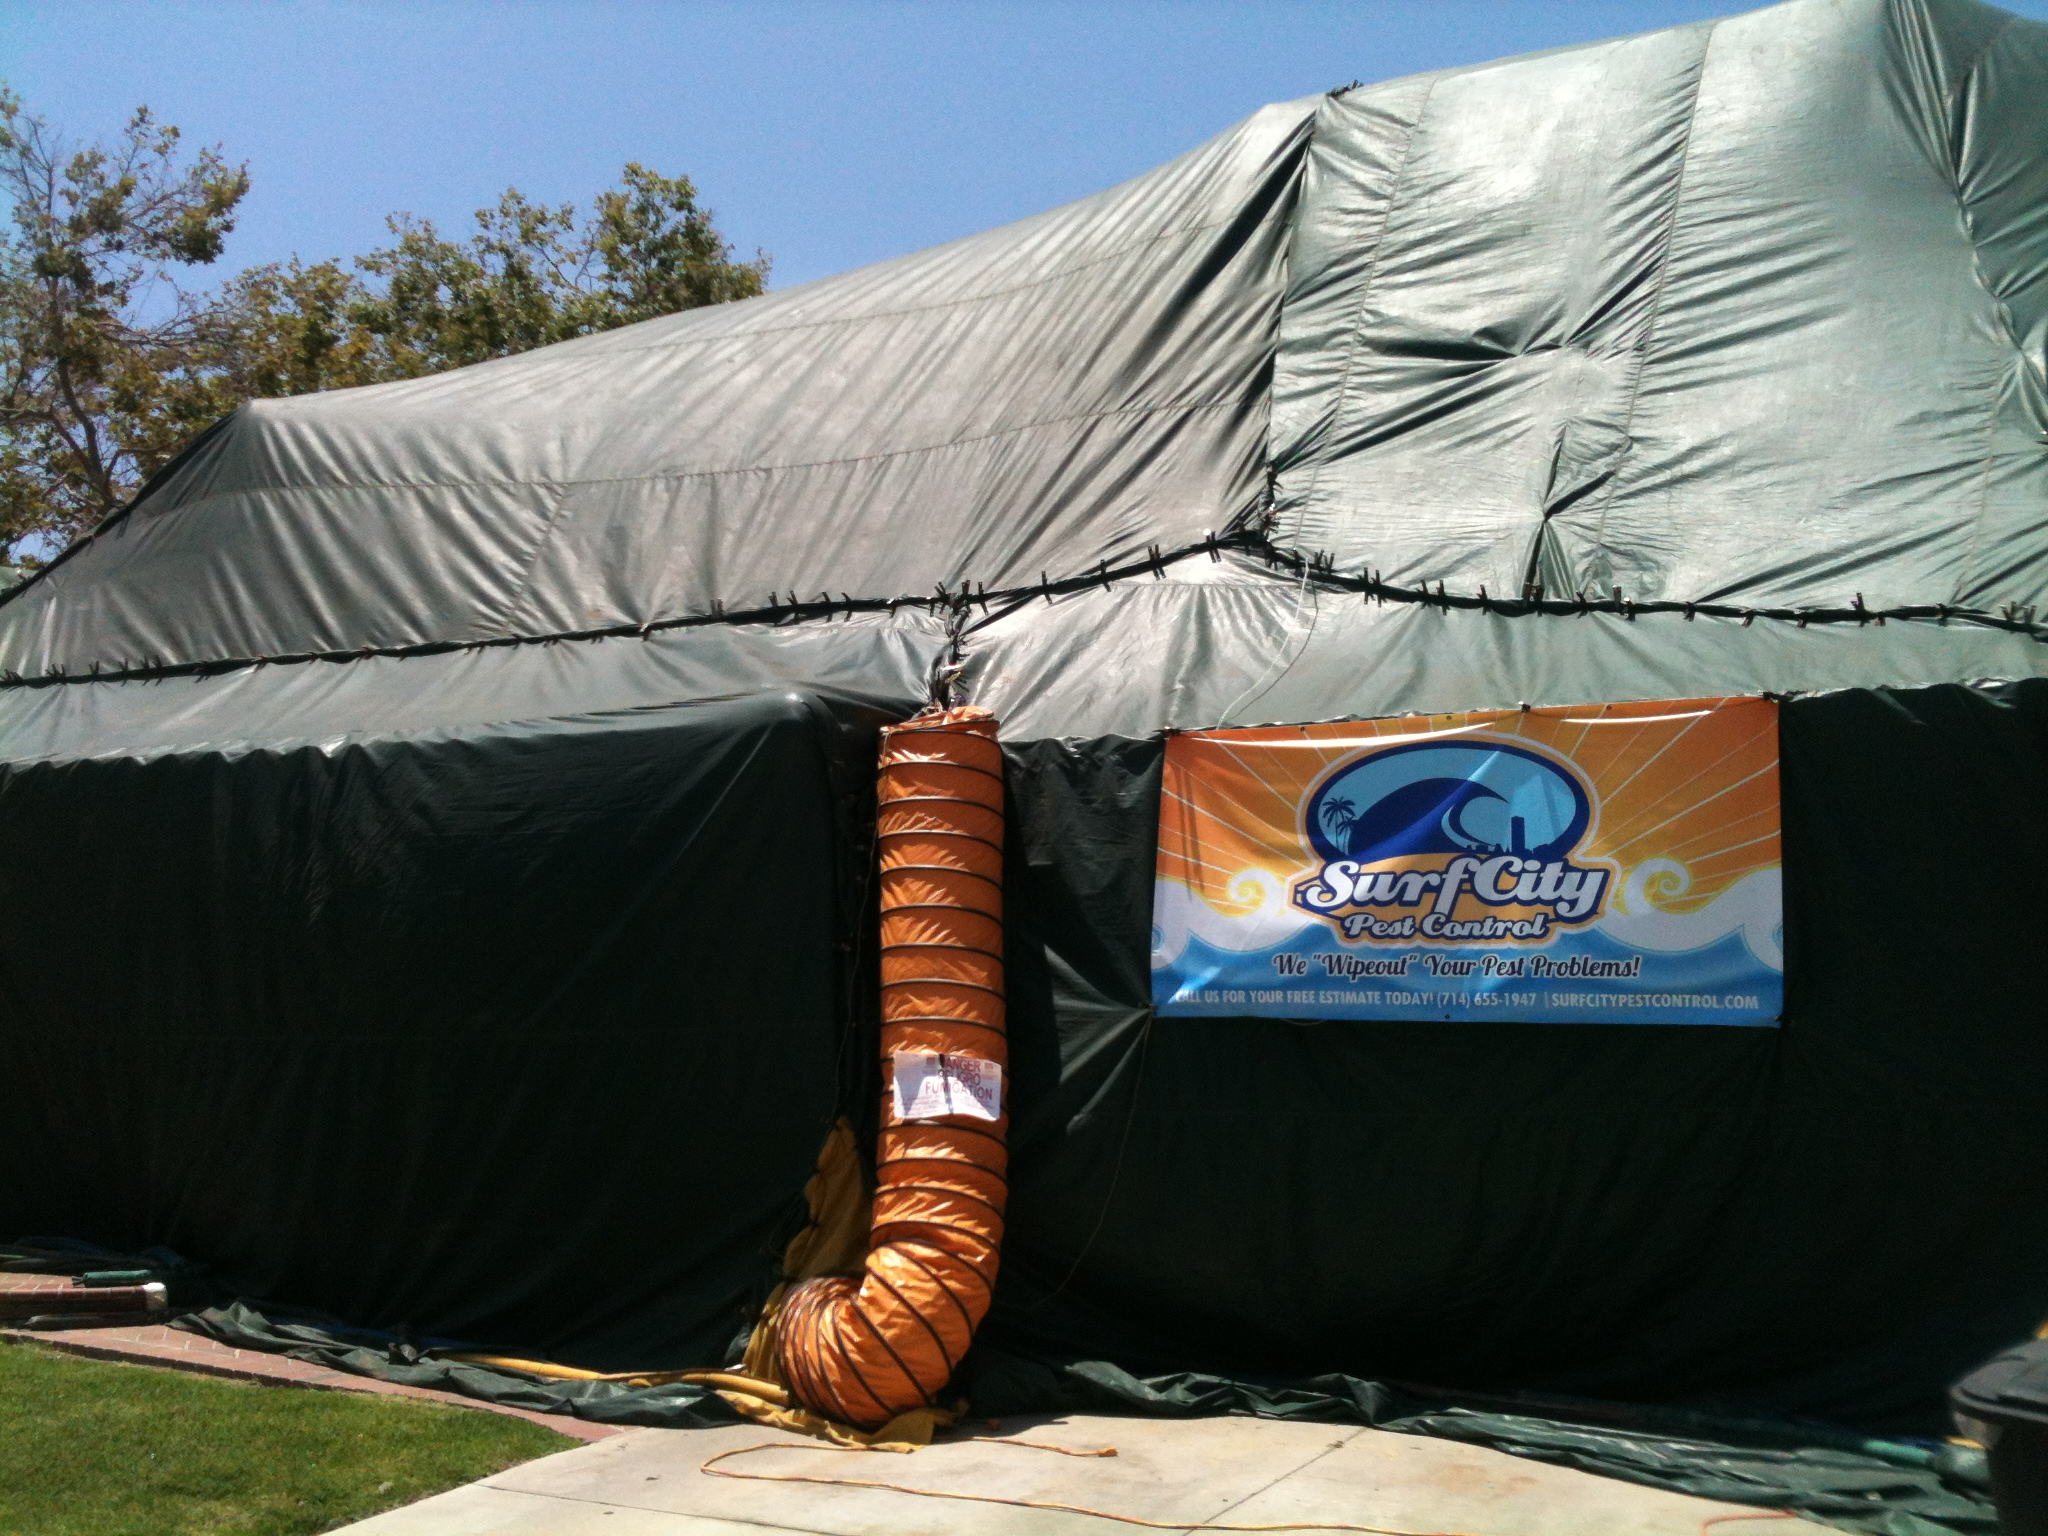 BI-MONTHLY ... & Wholesale Termite Services » Orange County u0026 LA County Pest ...